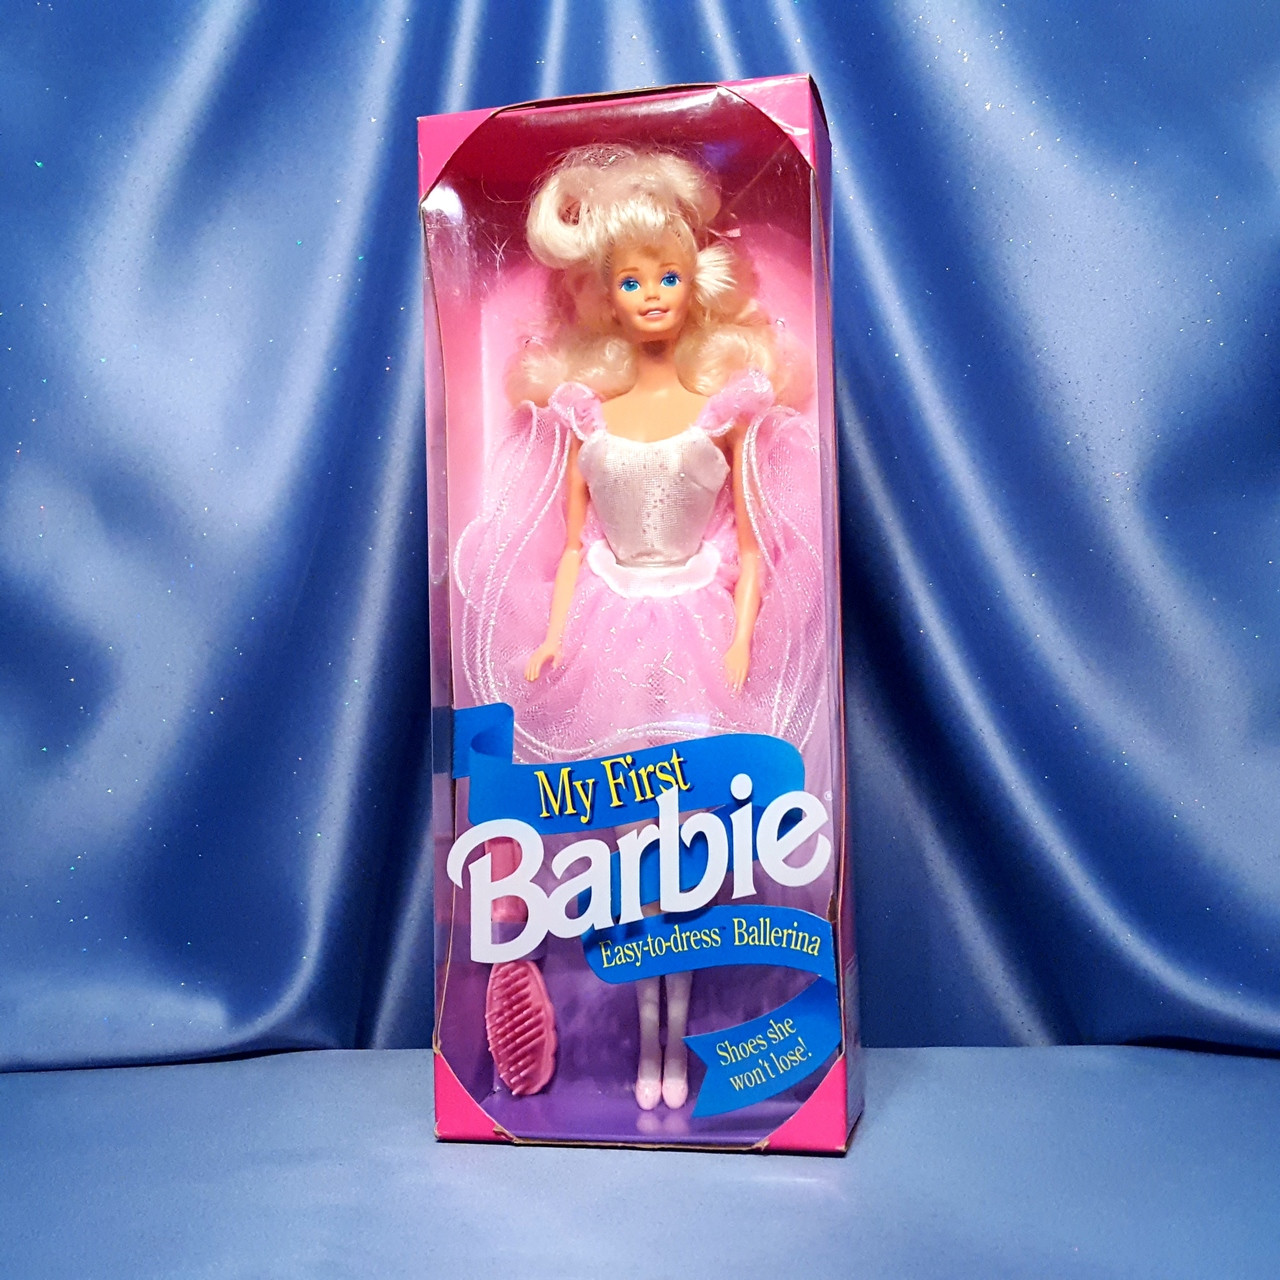 My First Barbie Doll - Ballerina by Mattel.